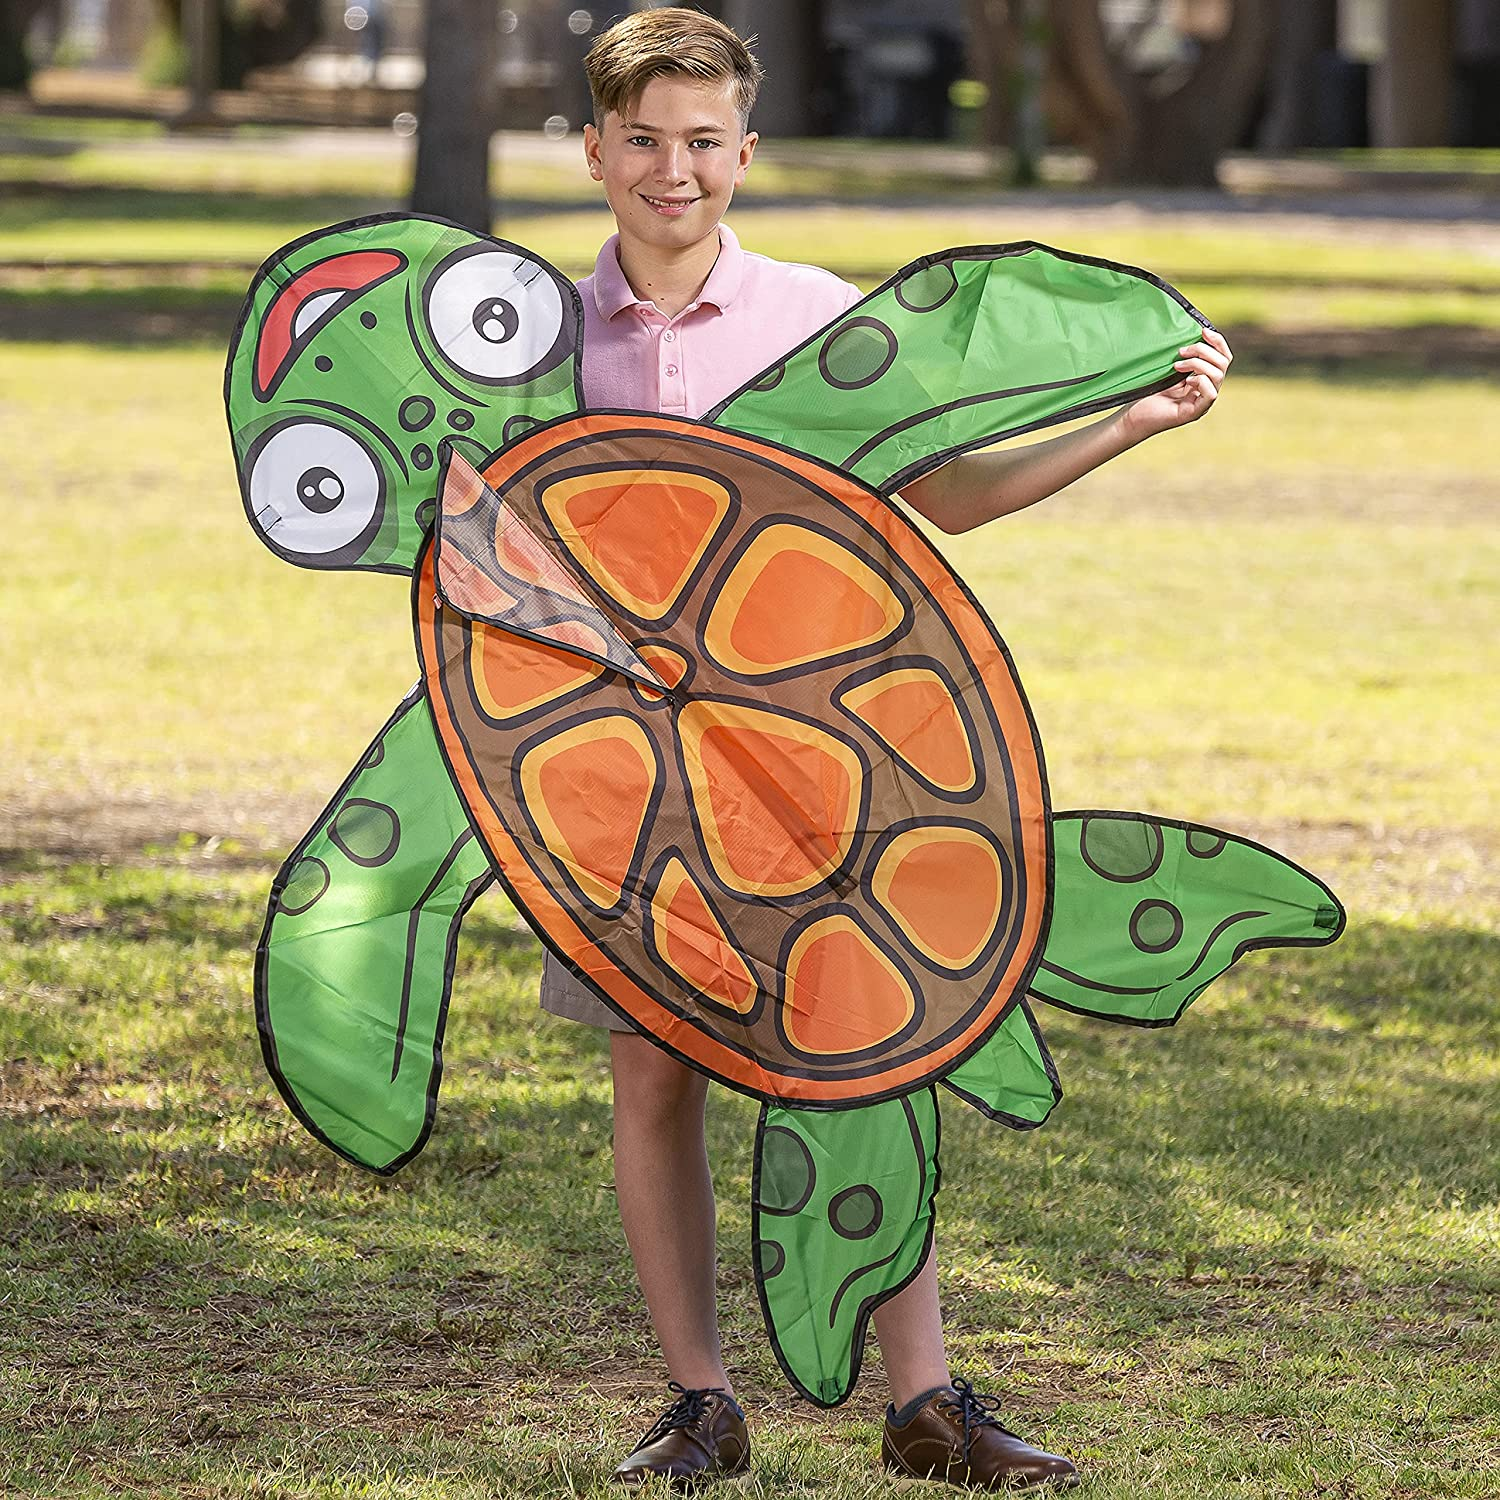 JOYIN Turtle Kite Easy Max 46% Max 54% OFF OFF to Fly Huge and Adults wit for Kids Kites